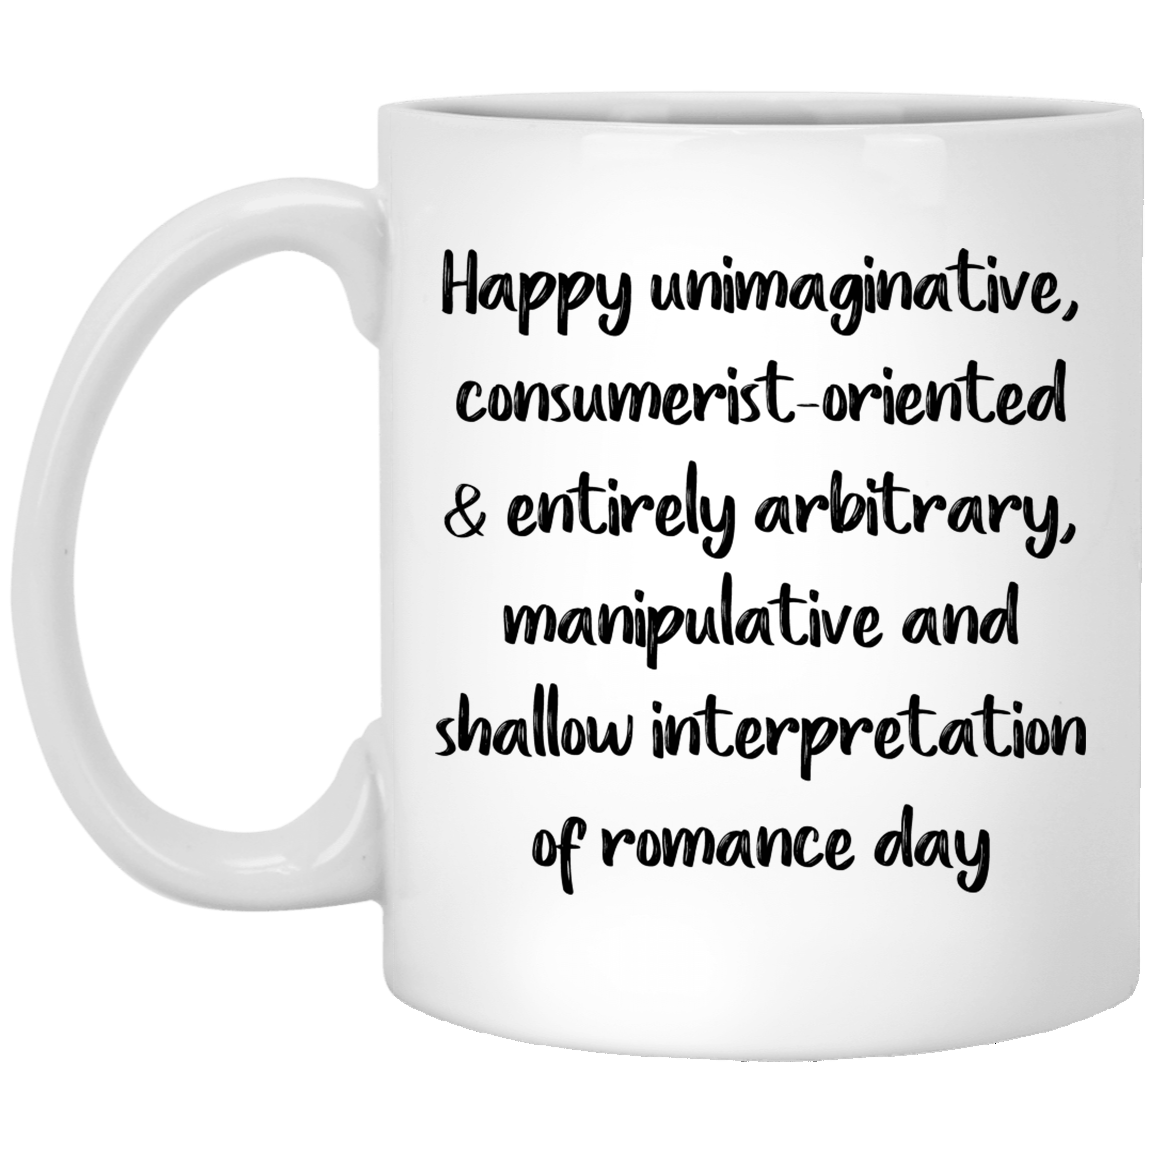 Happy-unimaginative,-consumerist-oriented-and-entirely-arbitrary,-manipulative-and-shallow-interpretation-of-romance-day Funny Quotes Coffee Mug 99promocode